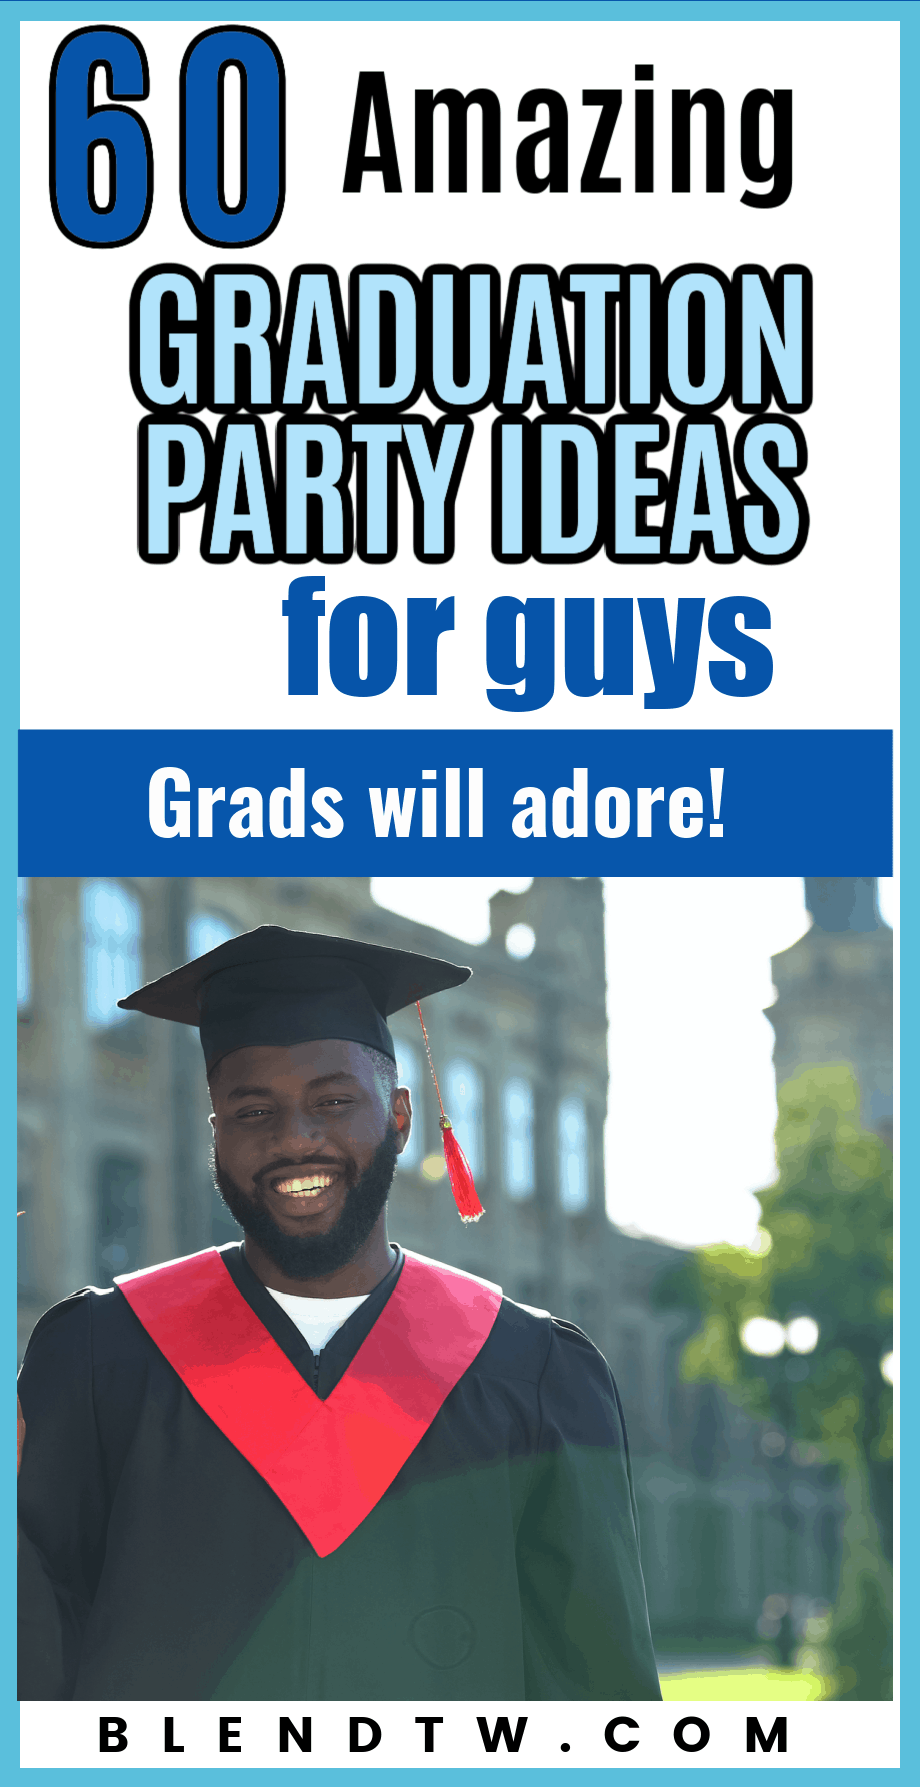 Graduation party ideas for guys